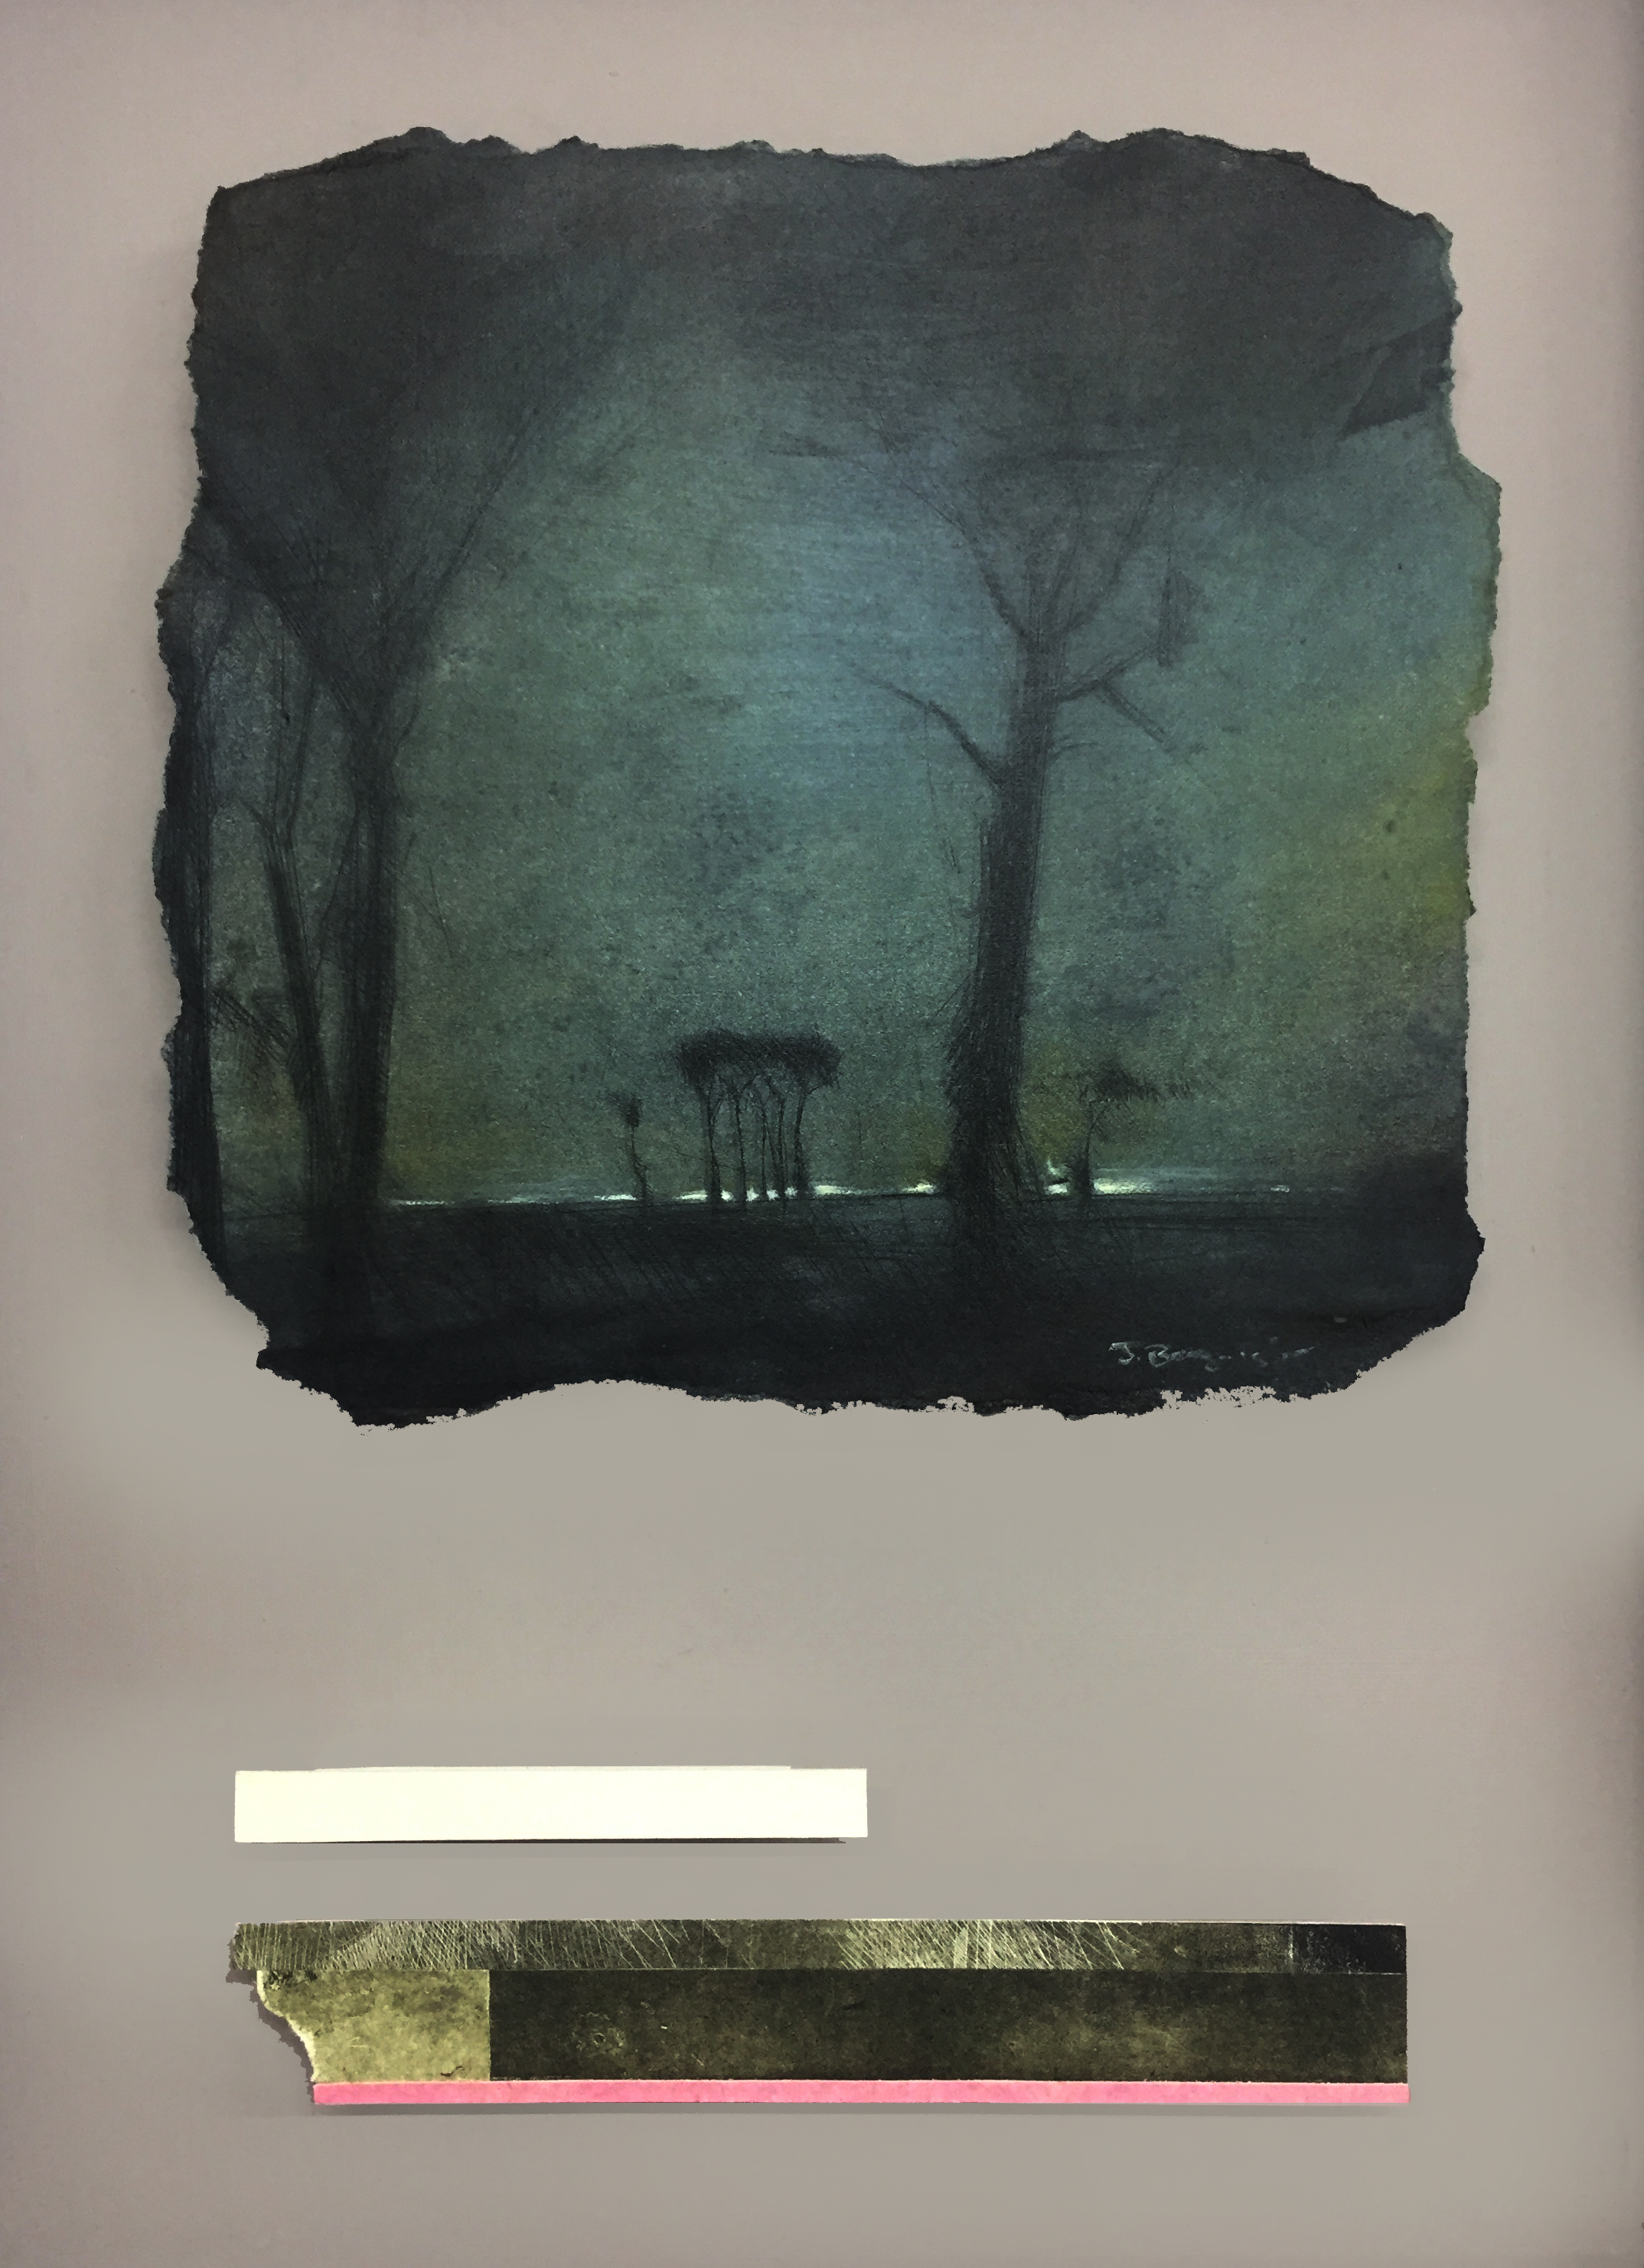 Nocturnal Landscape - 2019Monotype and Mixed media570 x 420 mm3800 ZAR